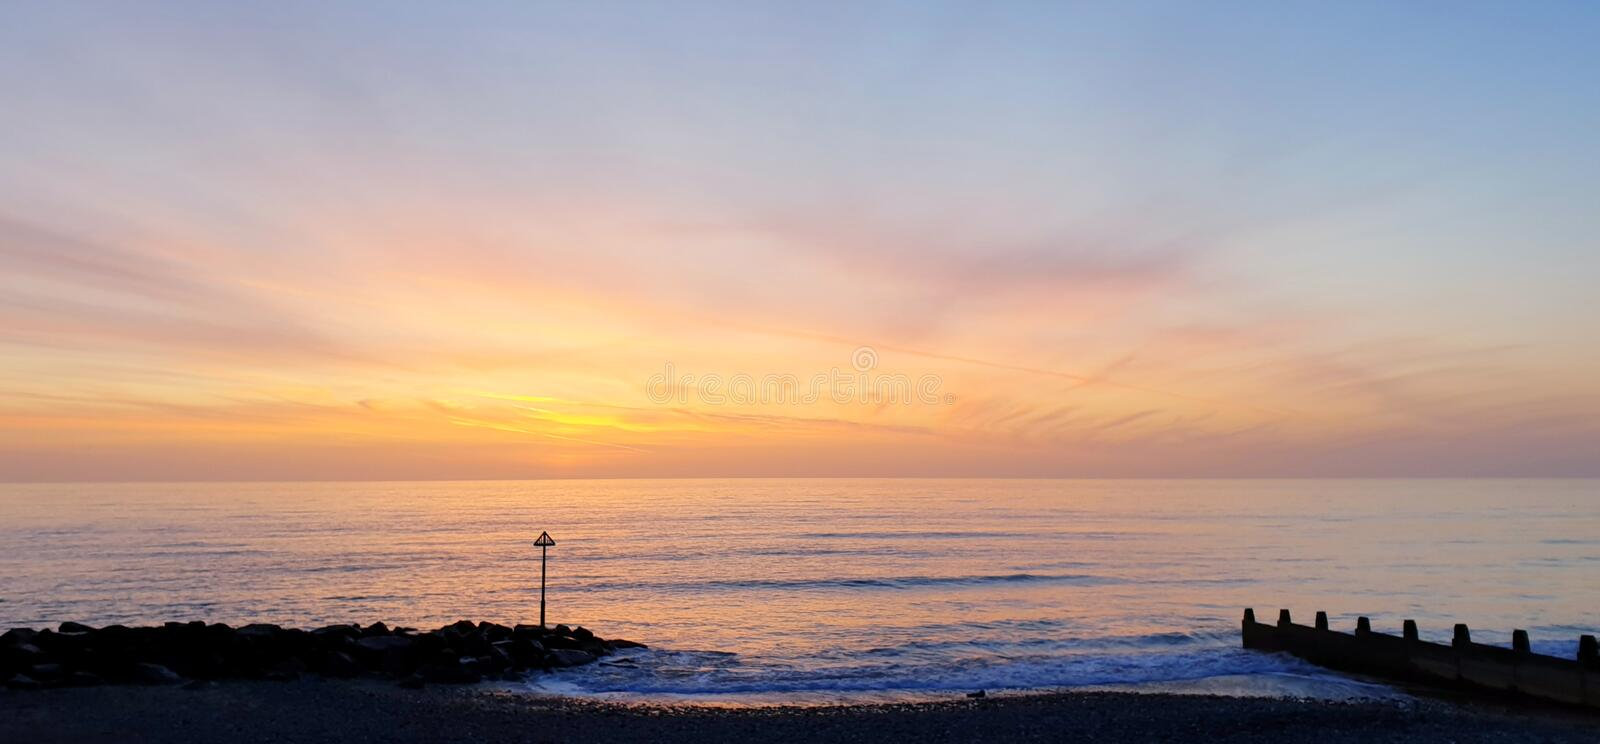 Calm pastel colored beach sea ocean sunset royalty free stock images